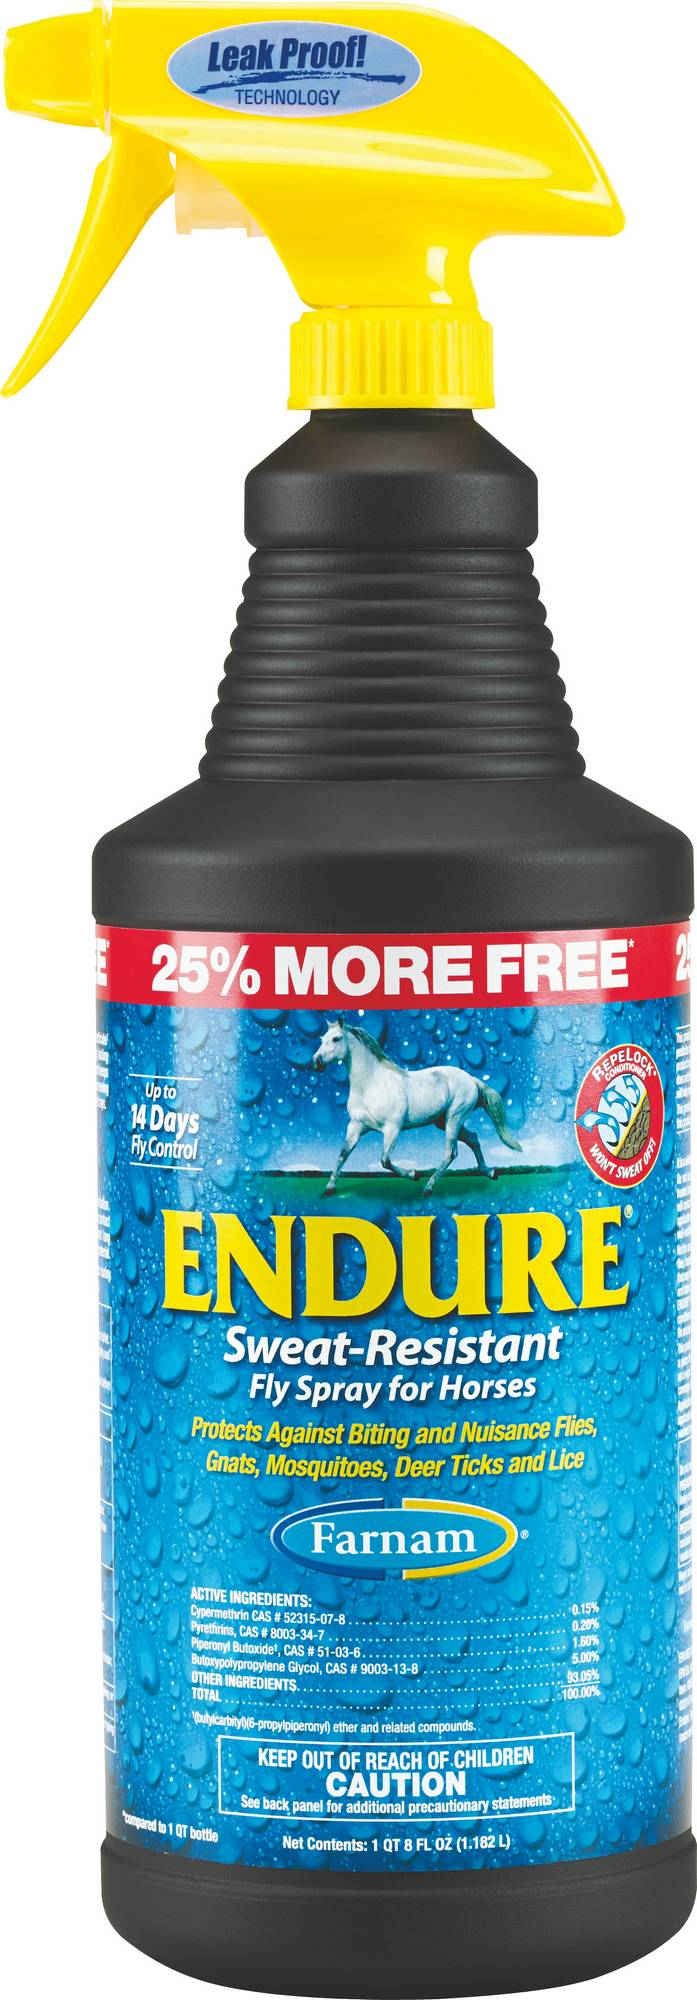 Farnam Endure Sweat Resistant Fly Spray For Horses Bonus